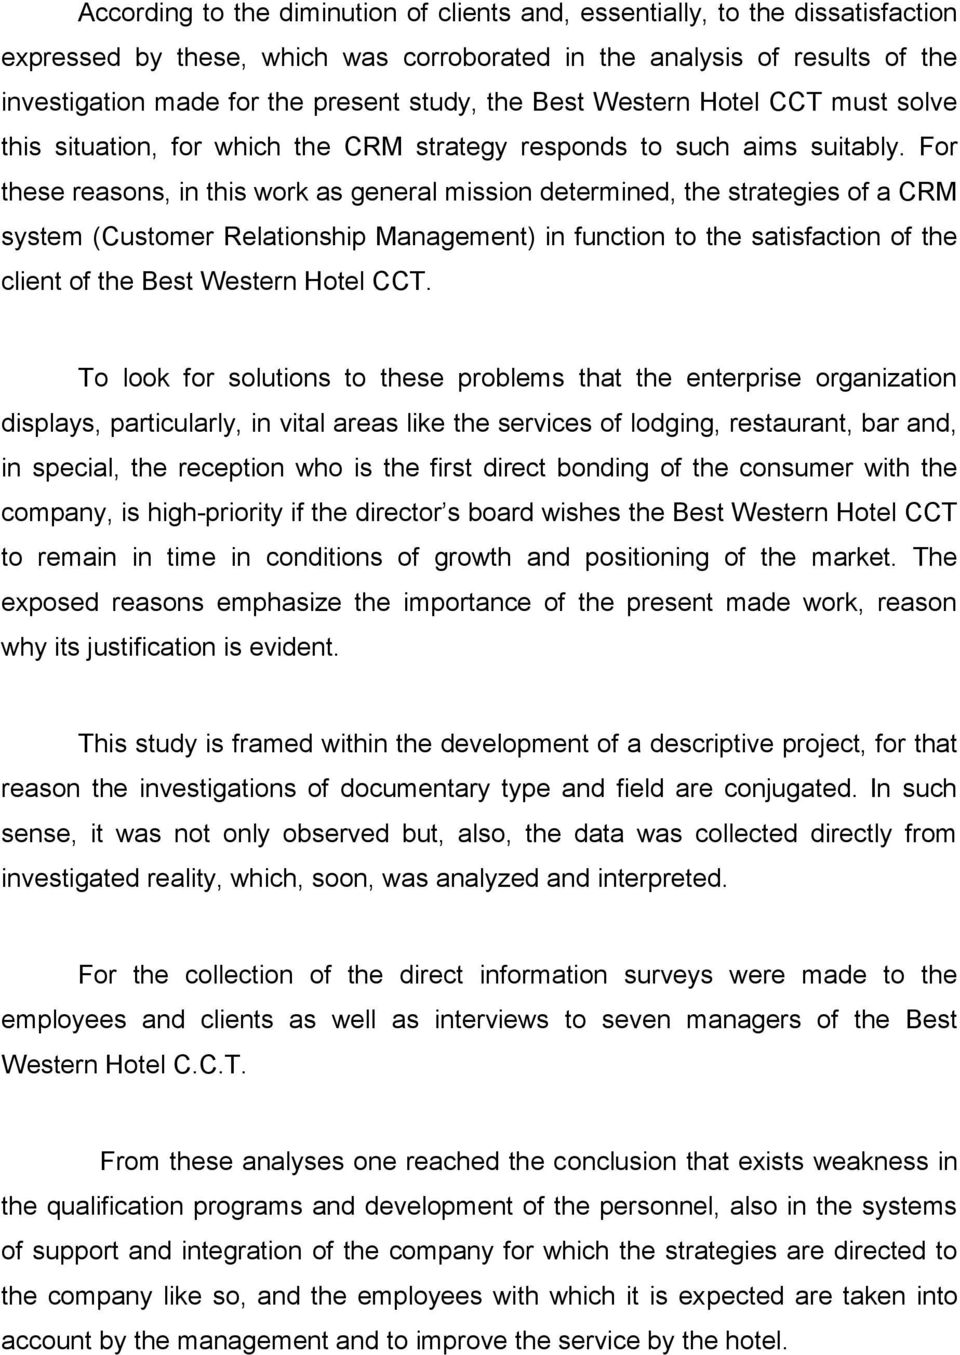 For these reasons, in this work as general mission determined, the strategies of a CRM system (Customer Relationship Management) in function to the satisfaction of the client of the Best Western